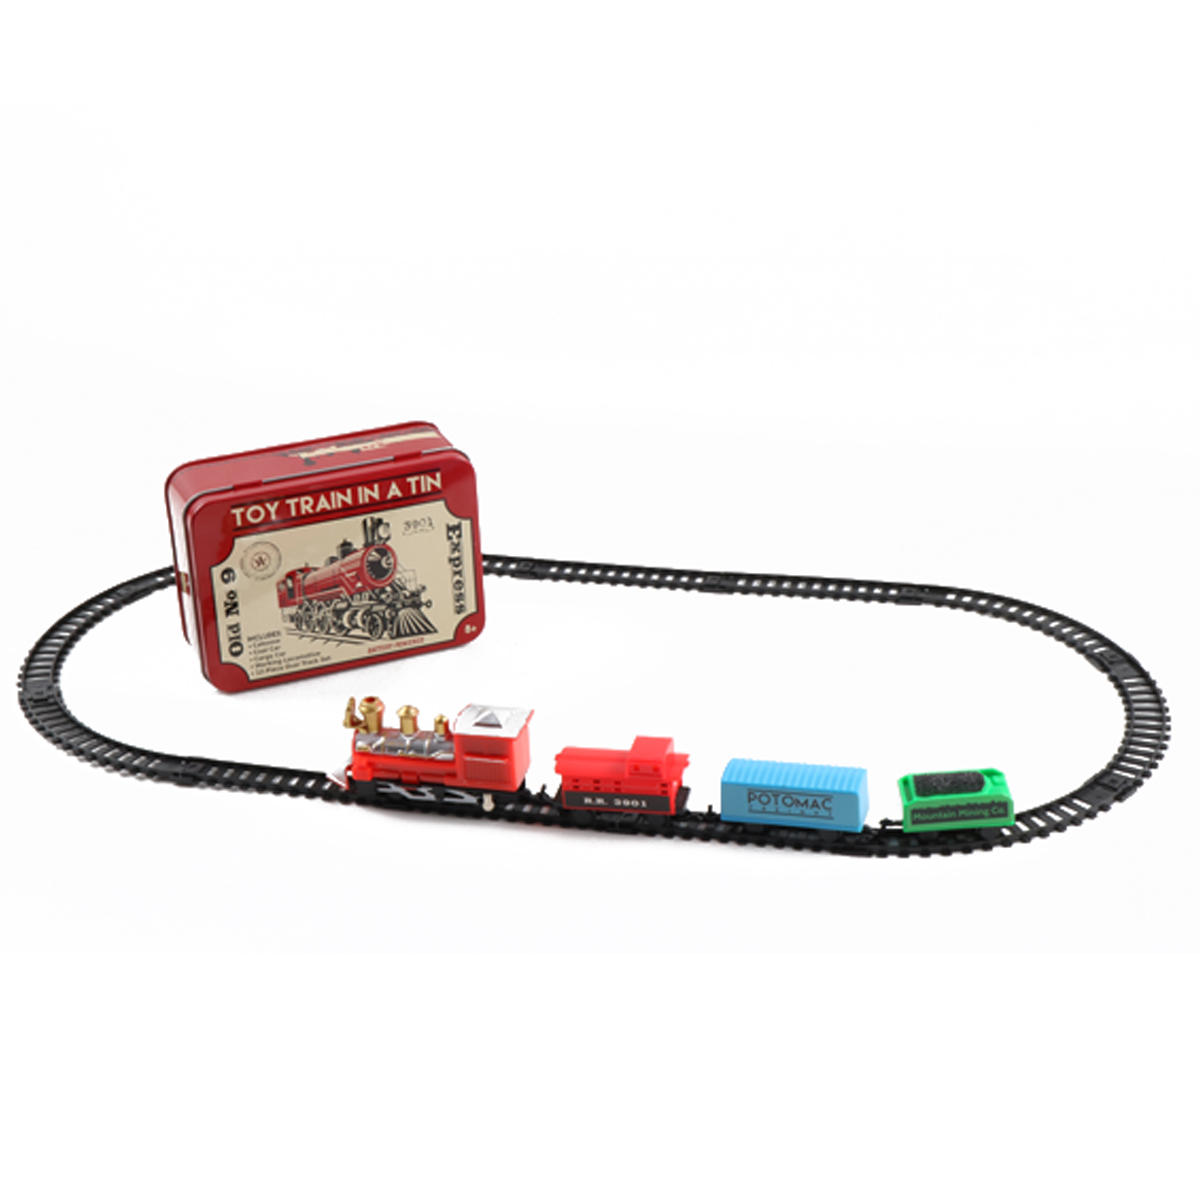 Train Set Track Toys Collection Gift